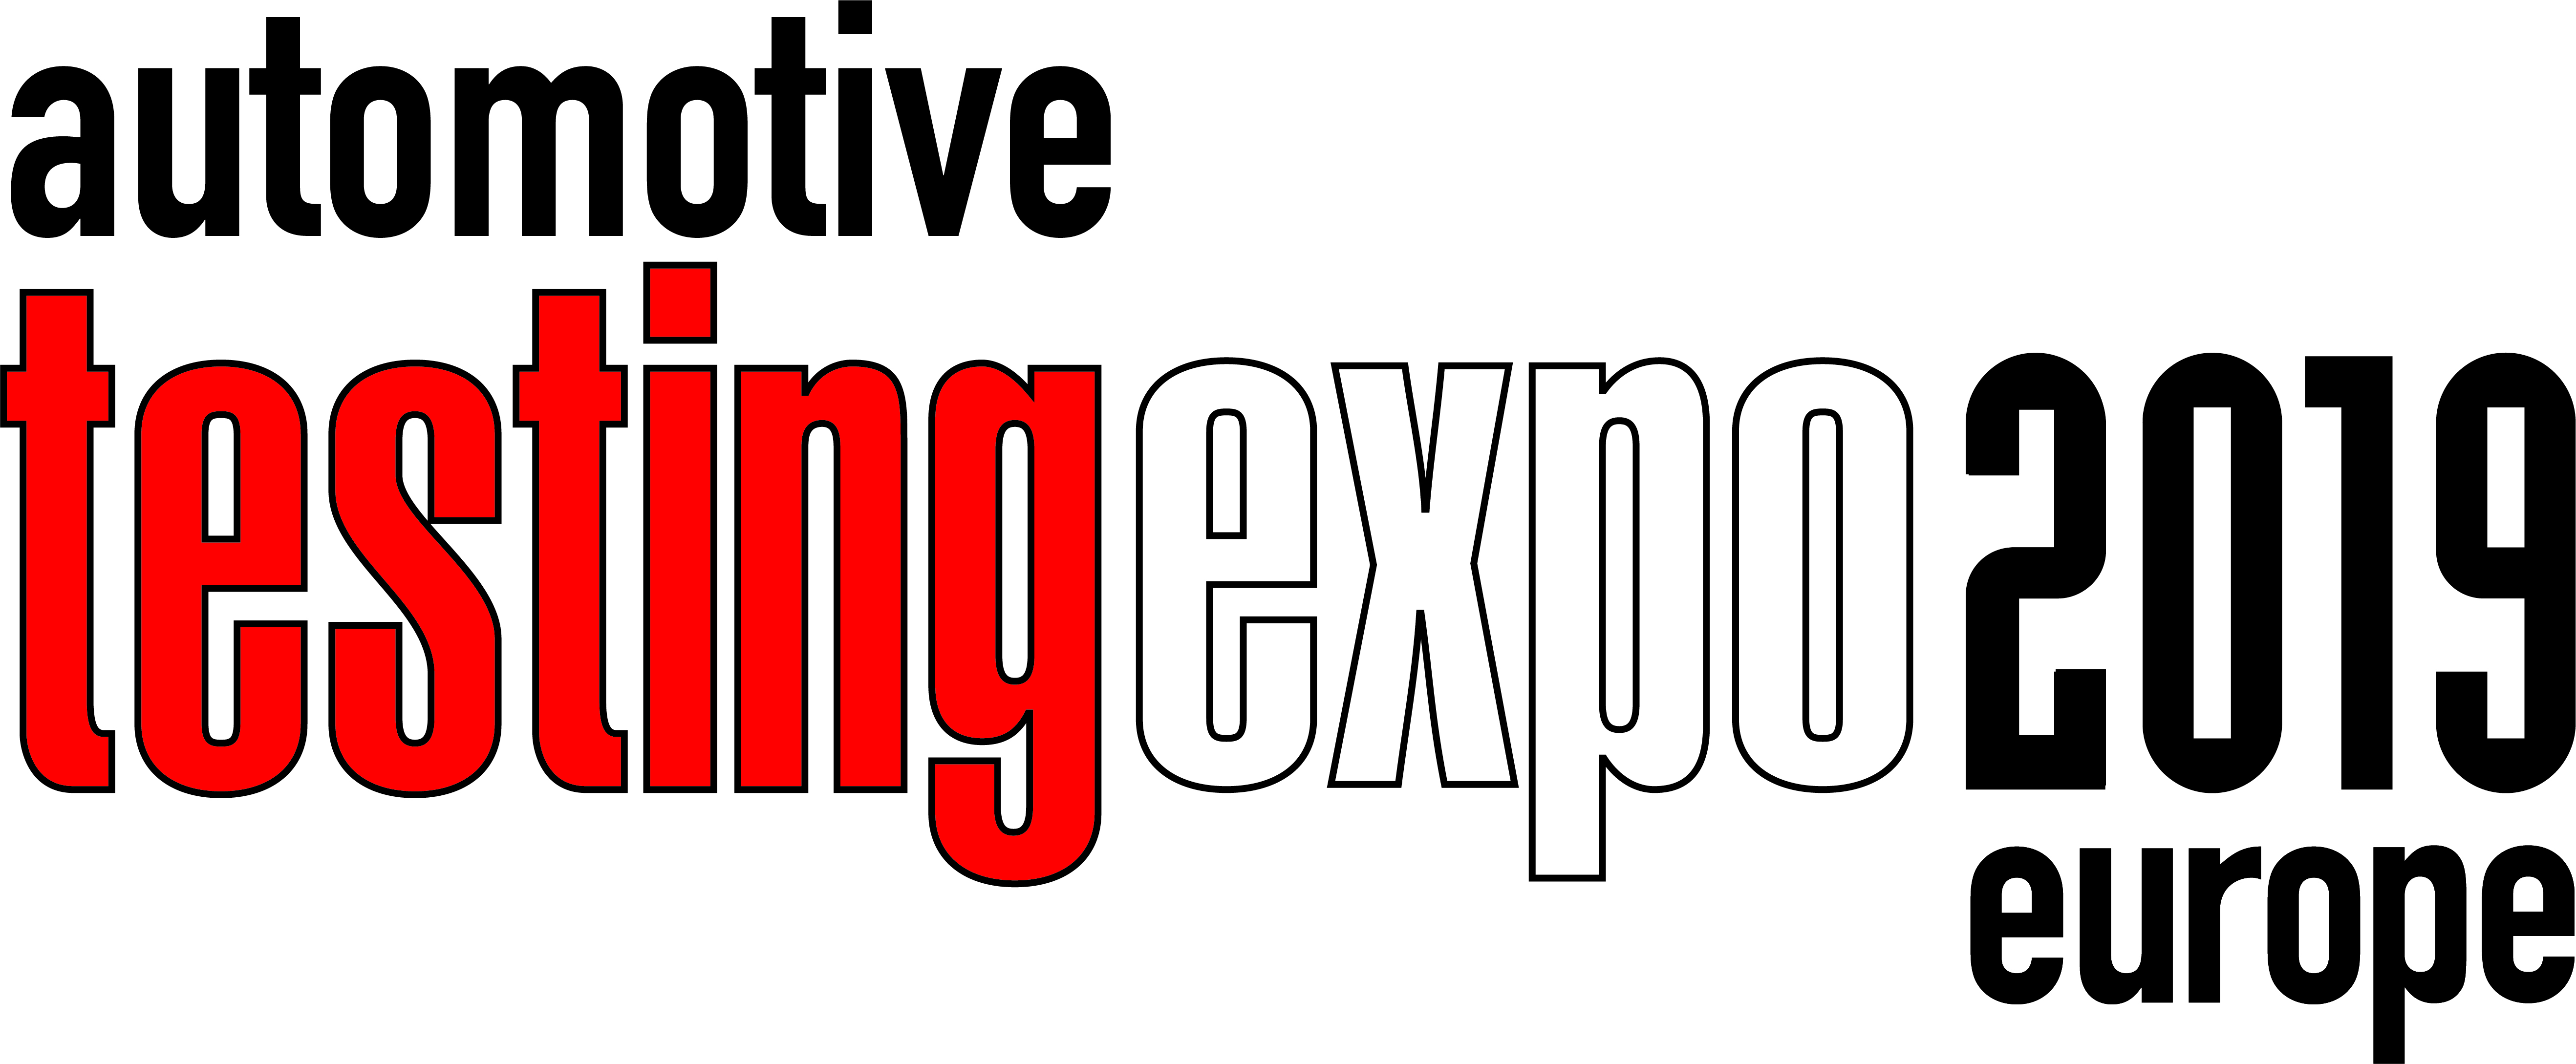 Testing Expo Europe - die Automotive Messe in Stuttgart